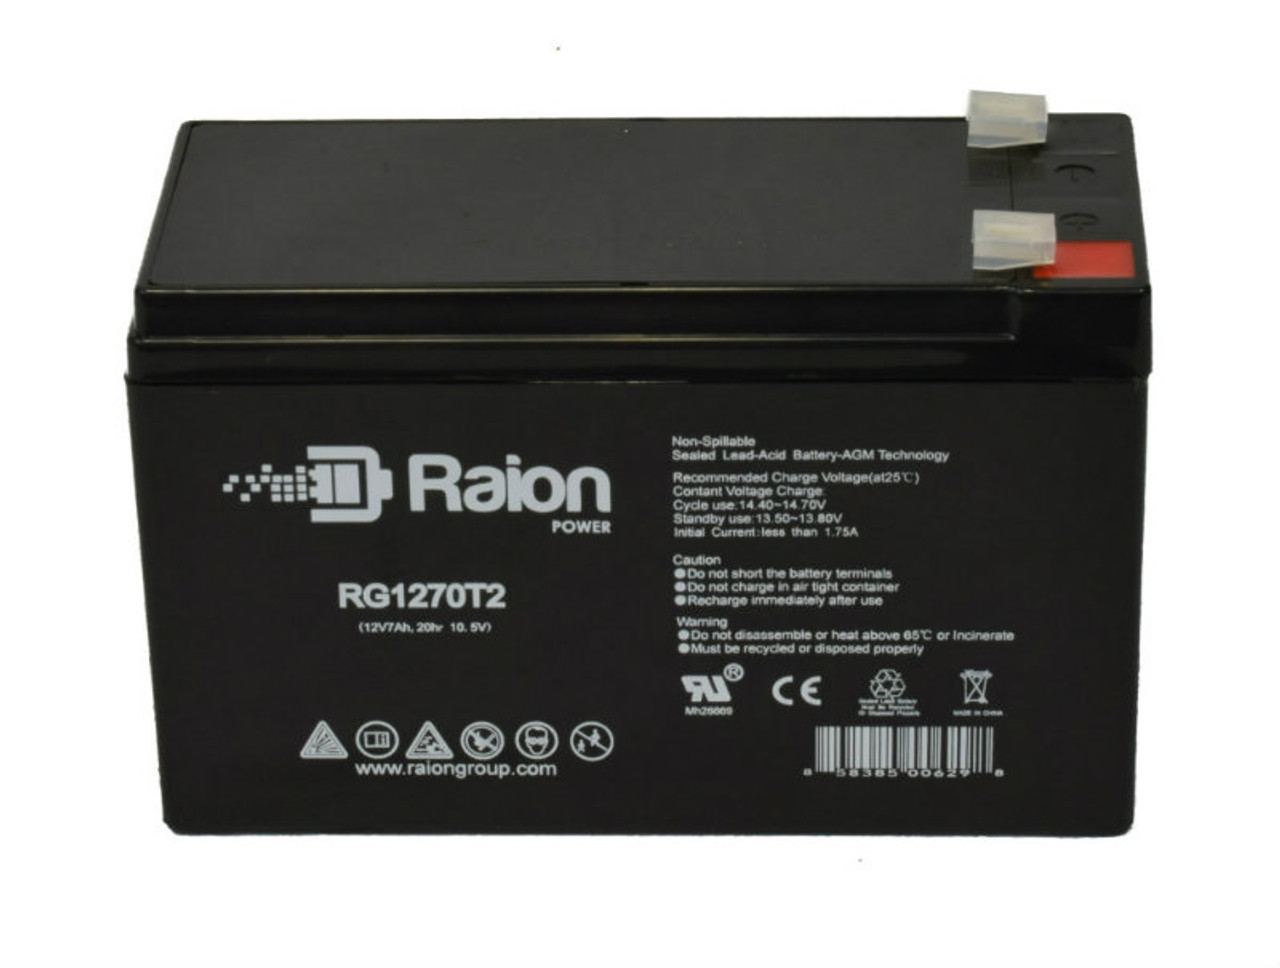 Raion Power 12V 7Ah SLA Battery With T1 Terminals For Alexander PS1270